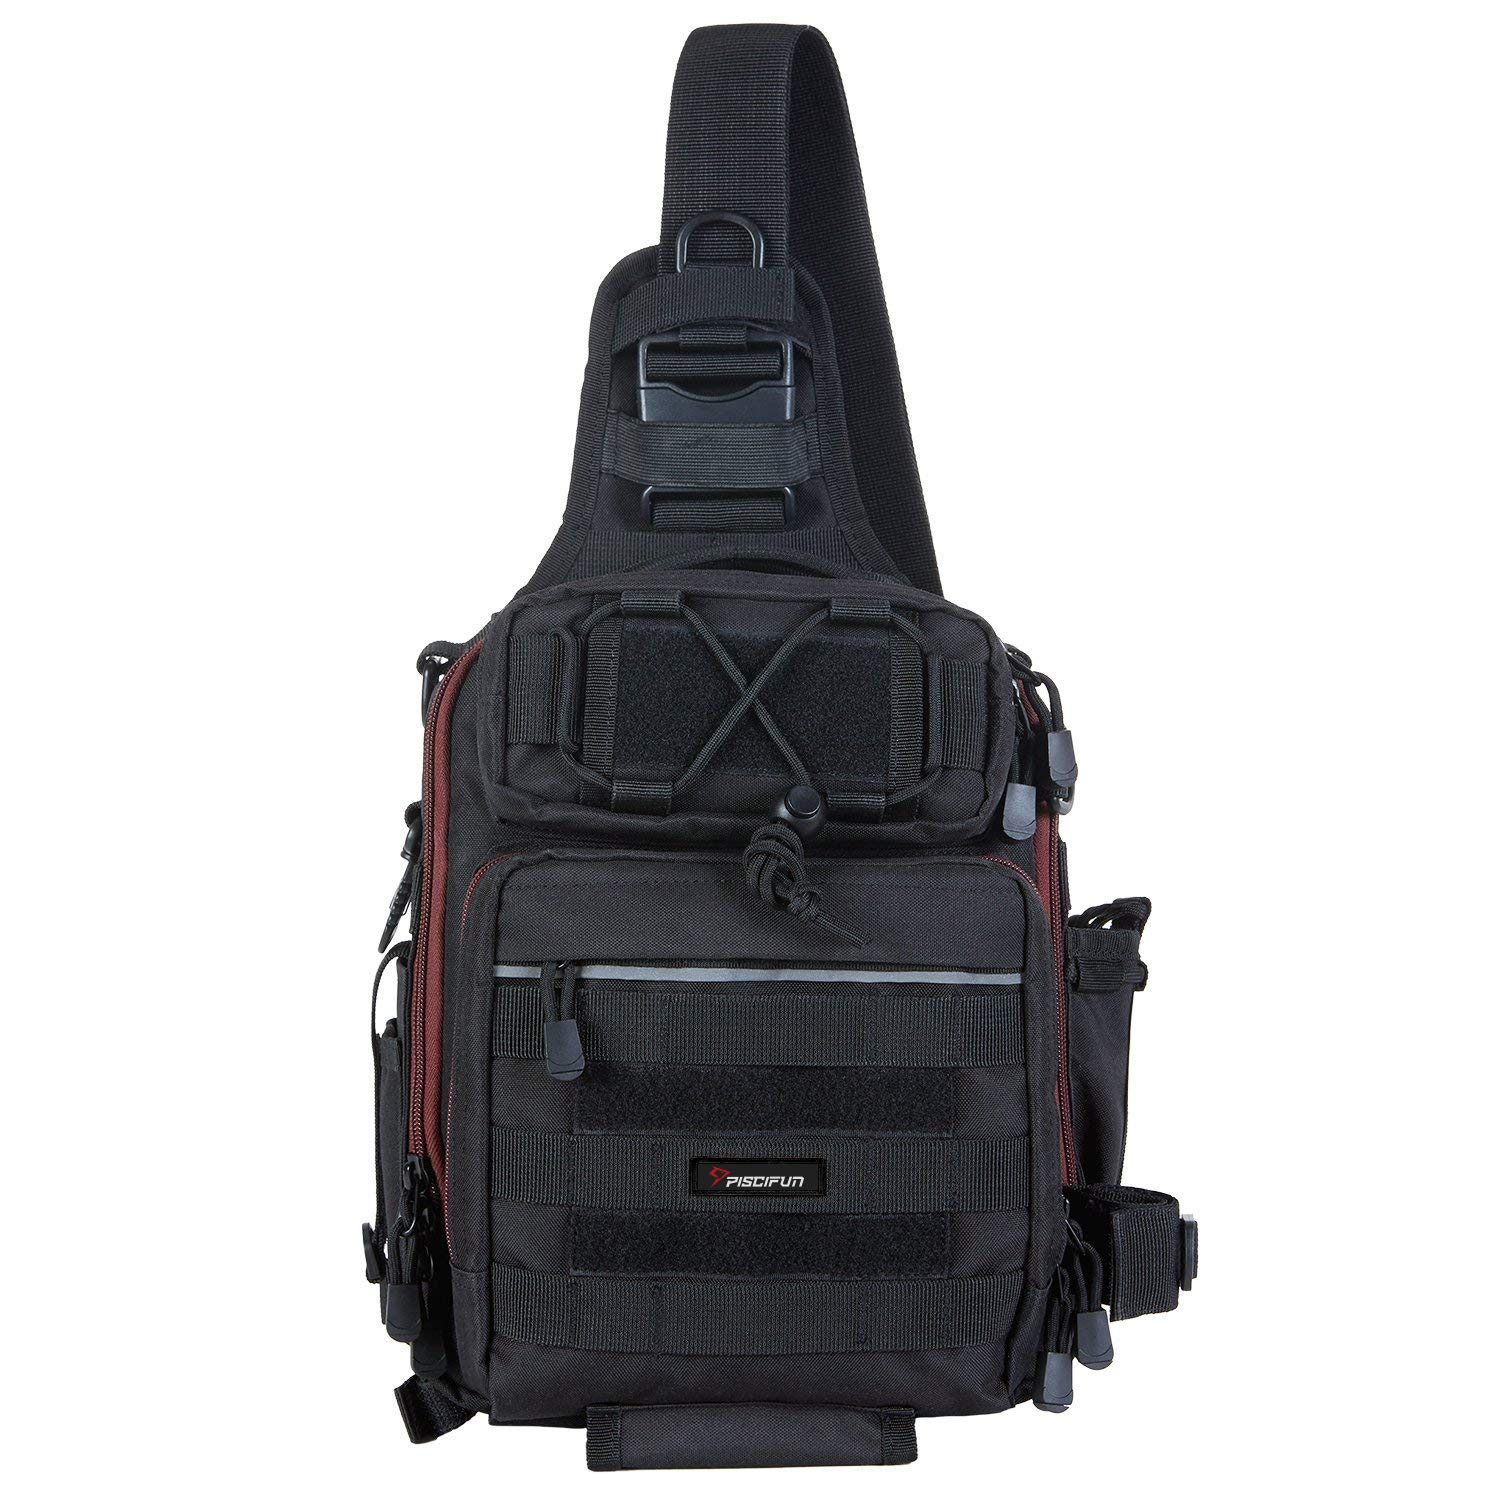 Piscifun Fishing Shoulder Backpack